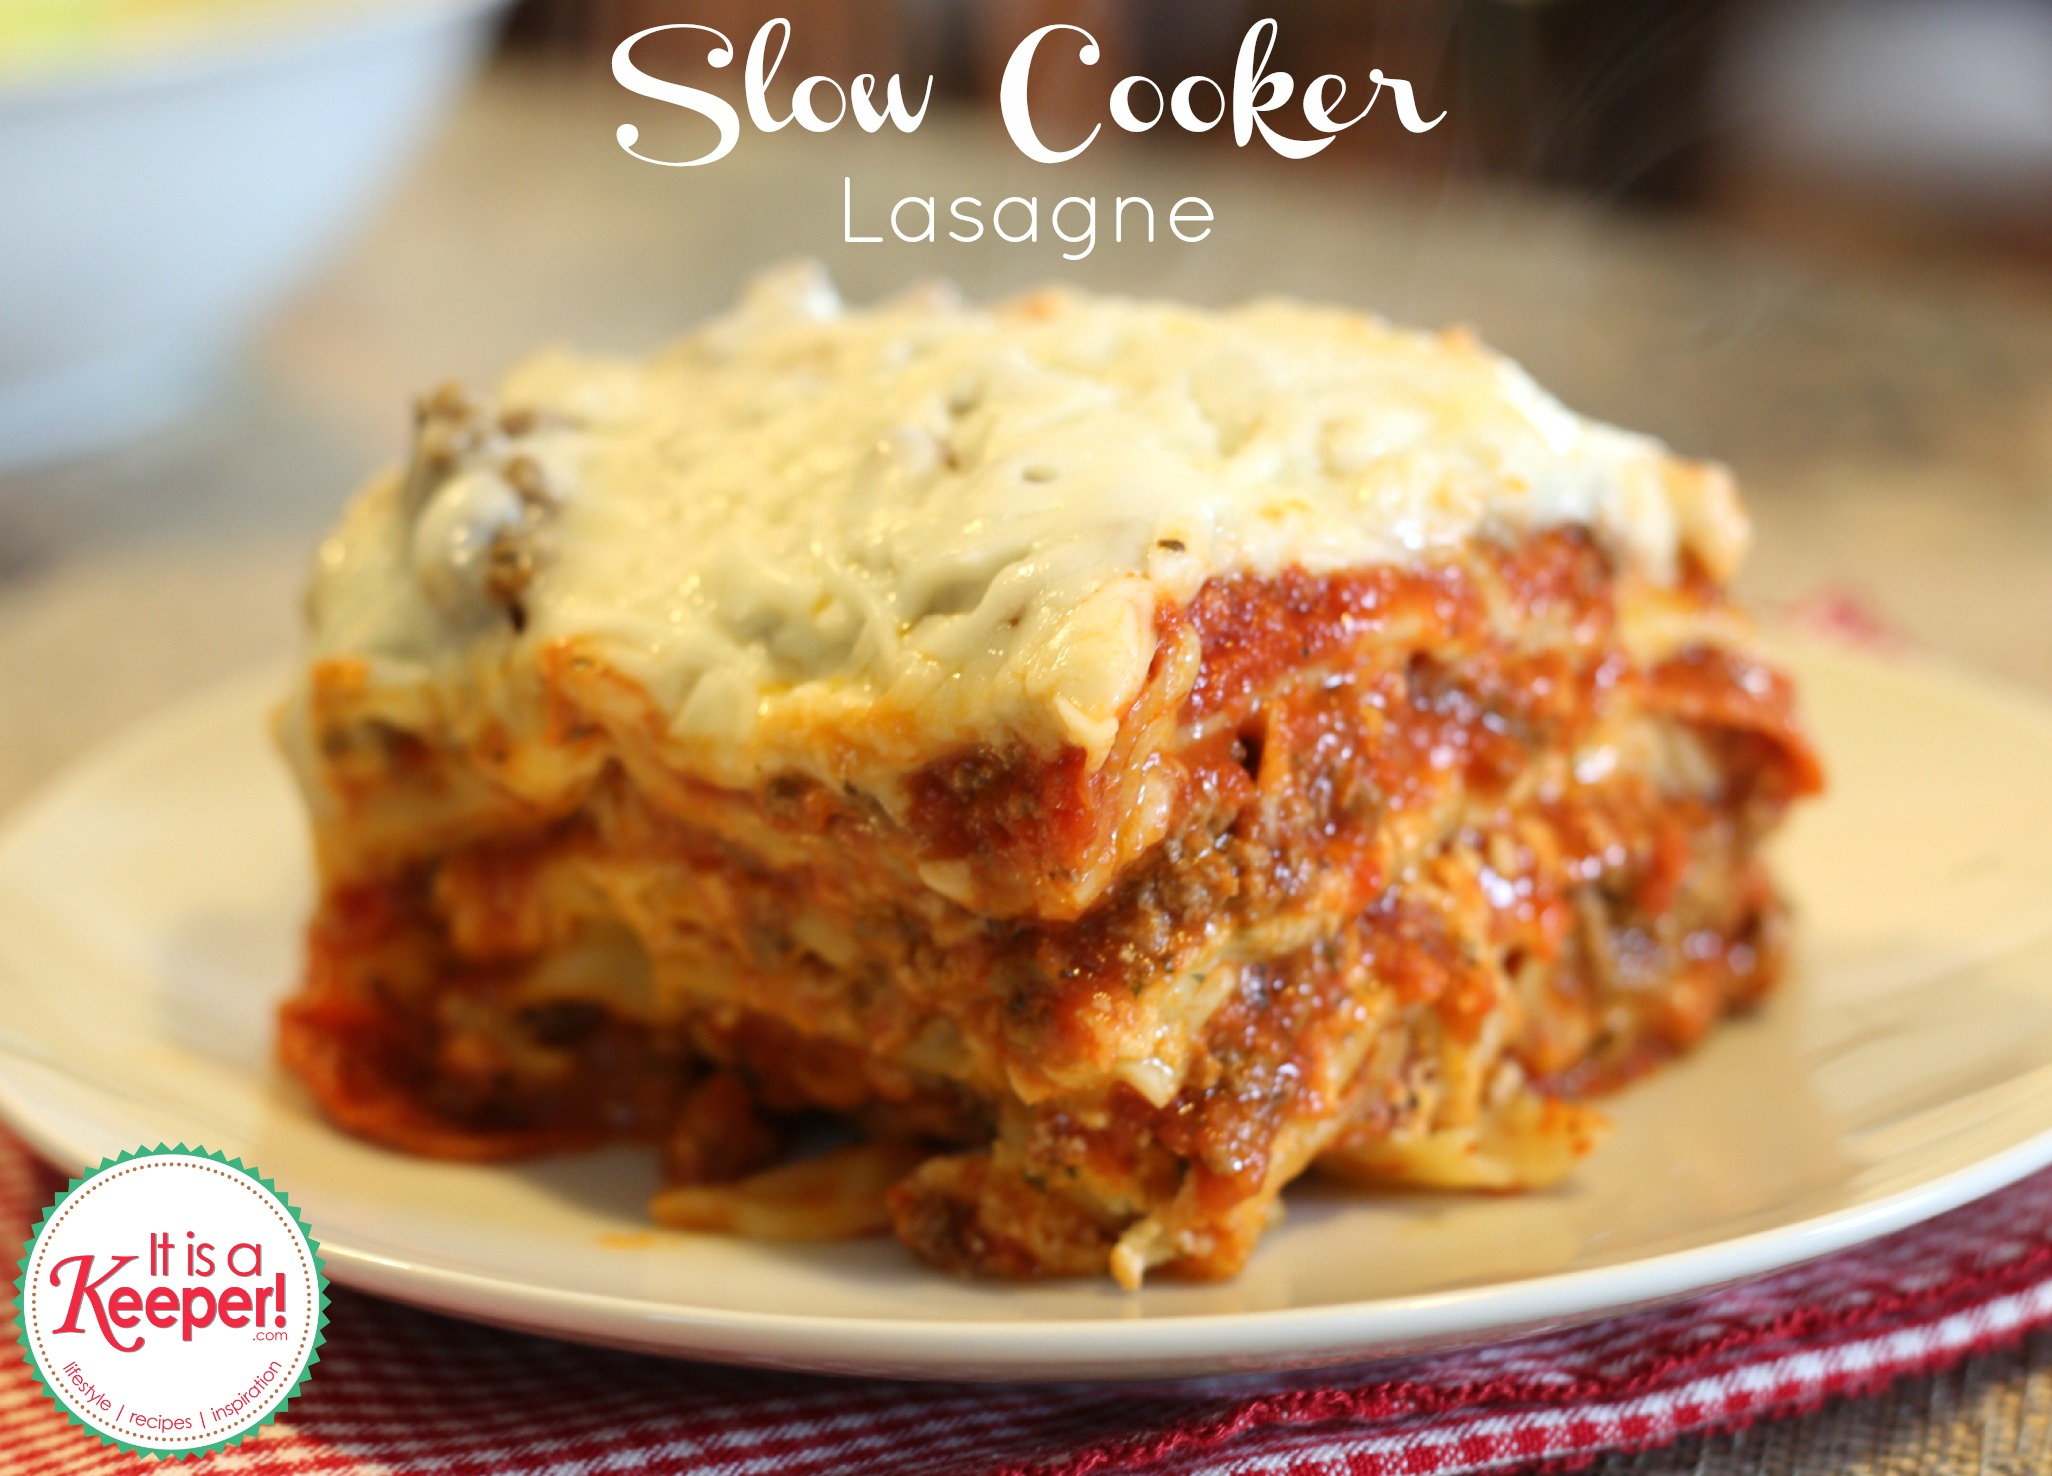 Slow Cooker Lasagna - It Is a Keeper